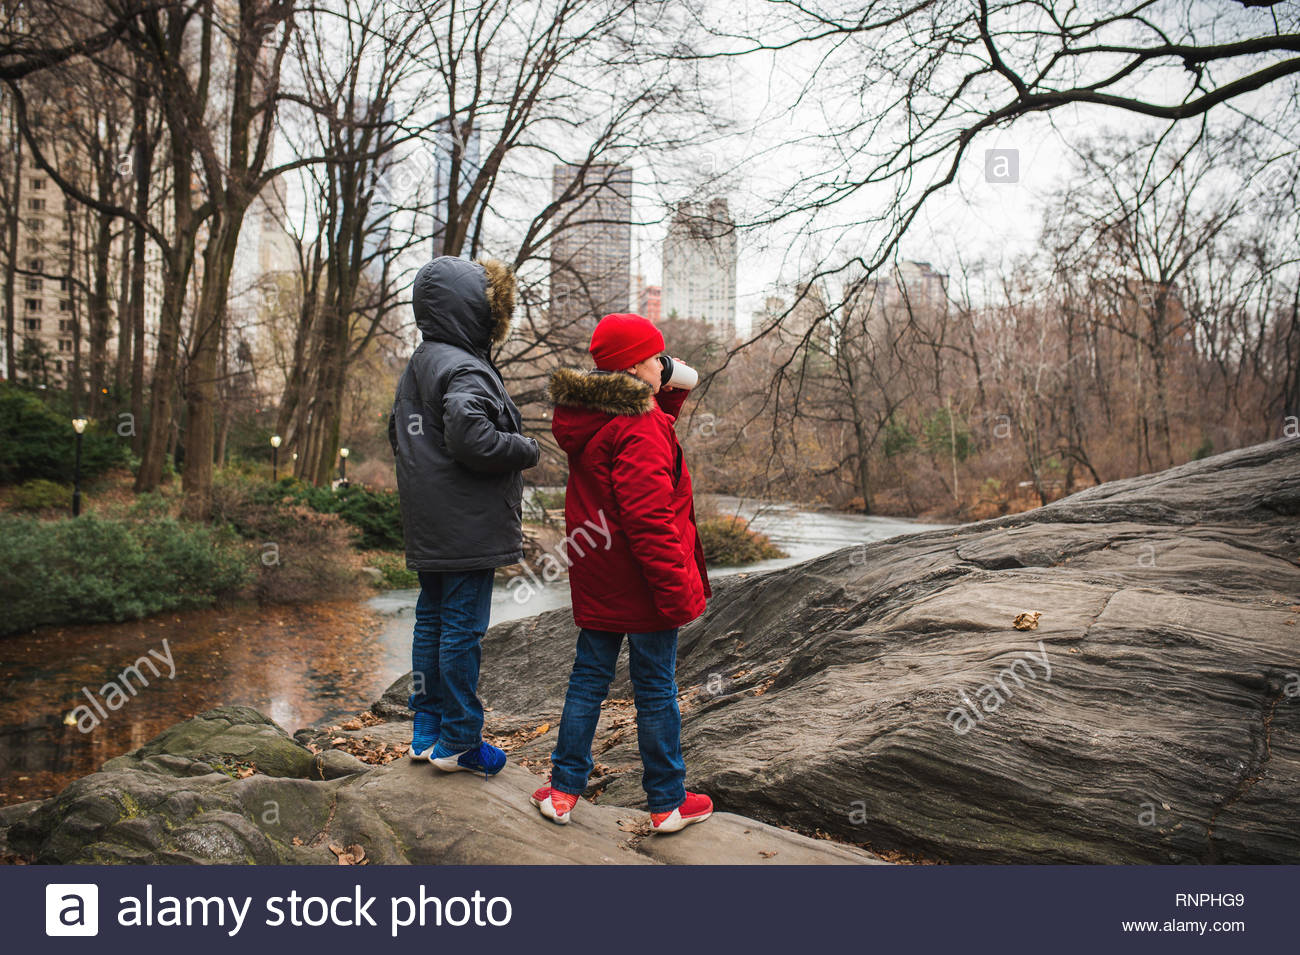 Two boys in parkas taking in the sights of Central Park, New York City. - Stock Image